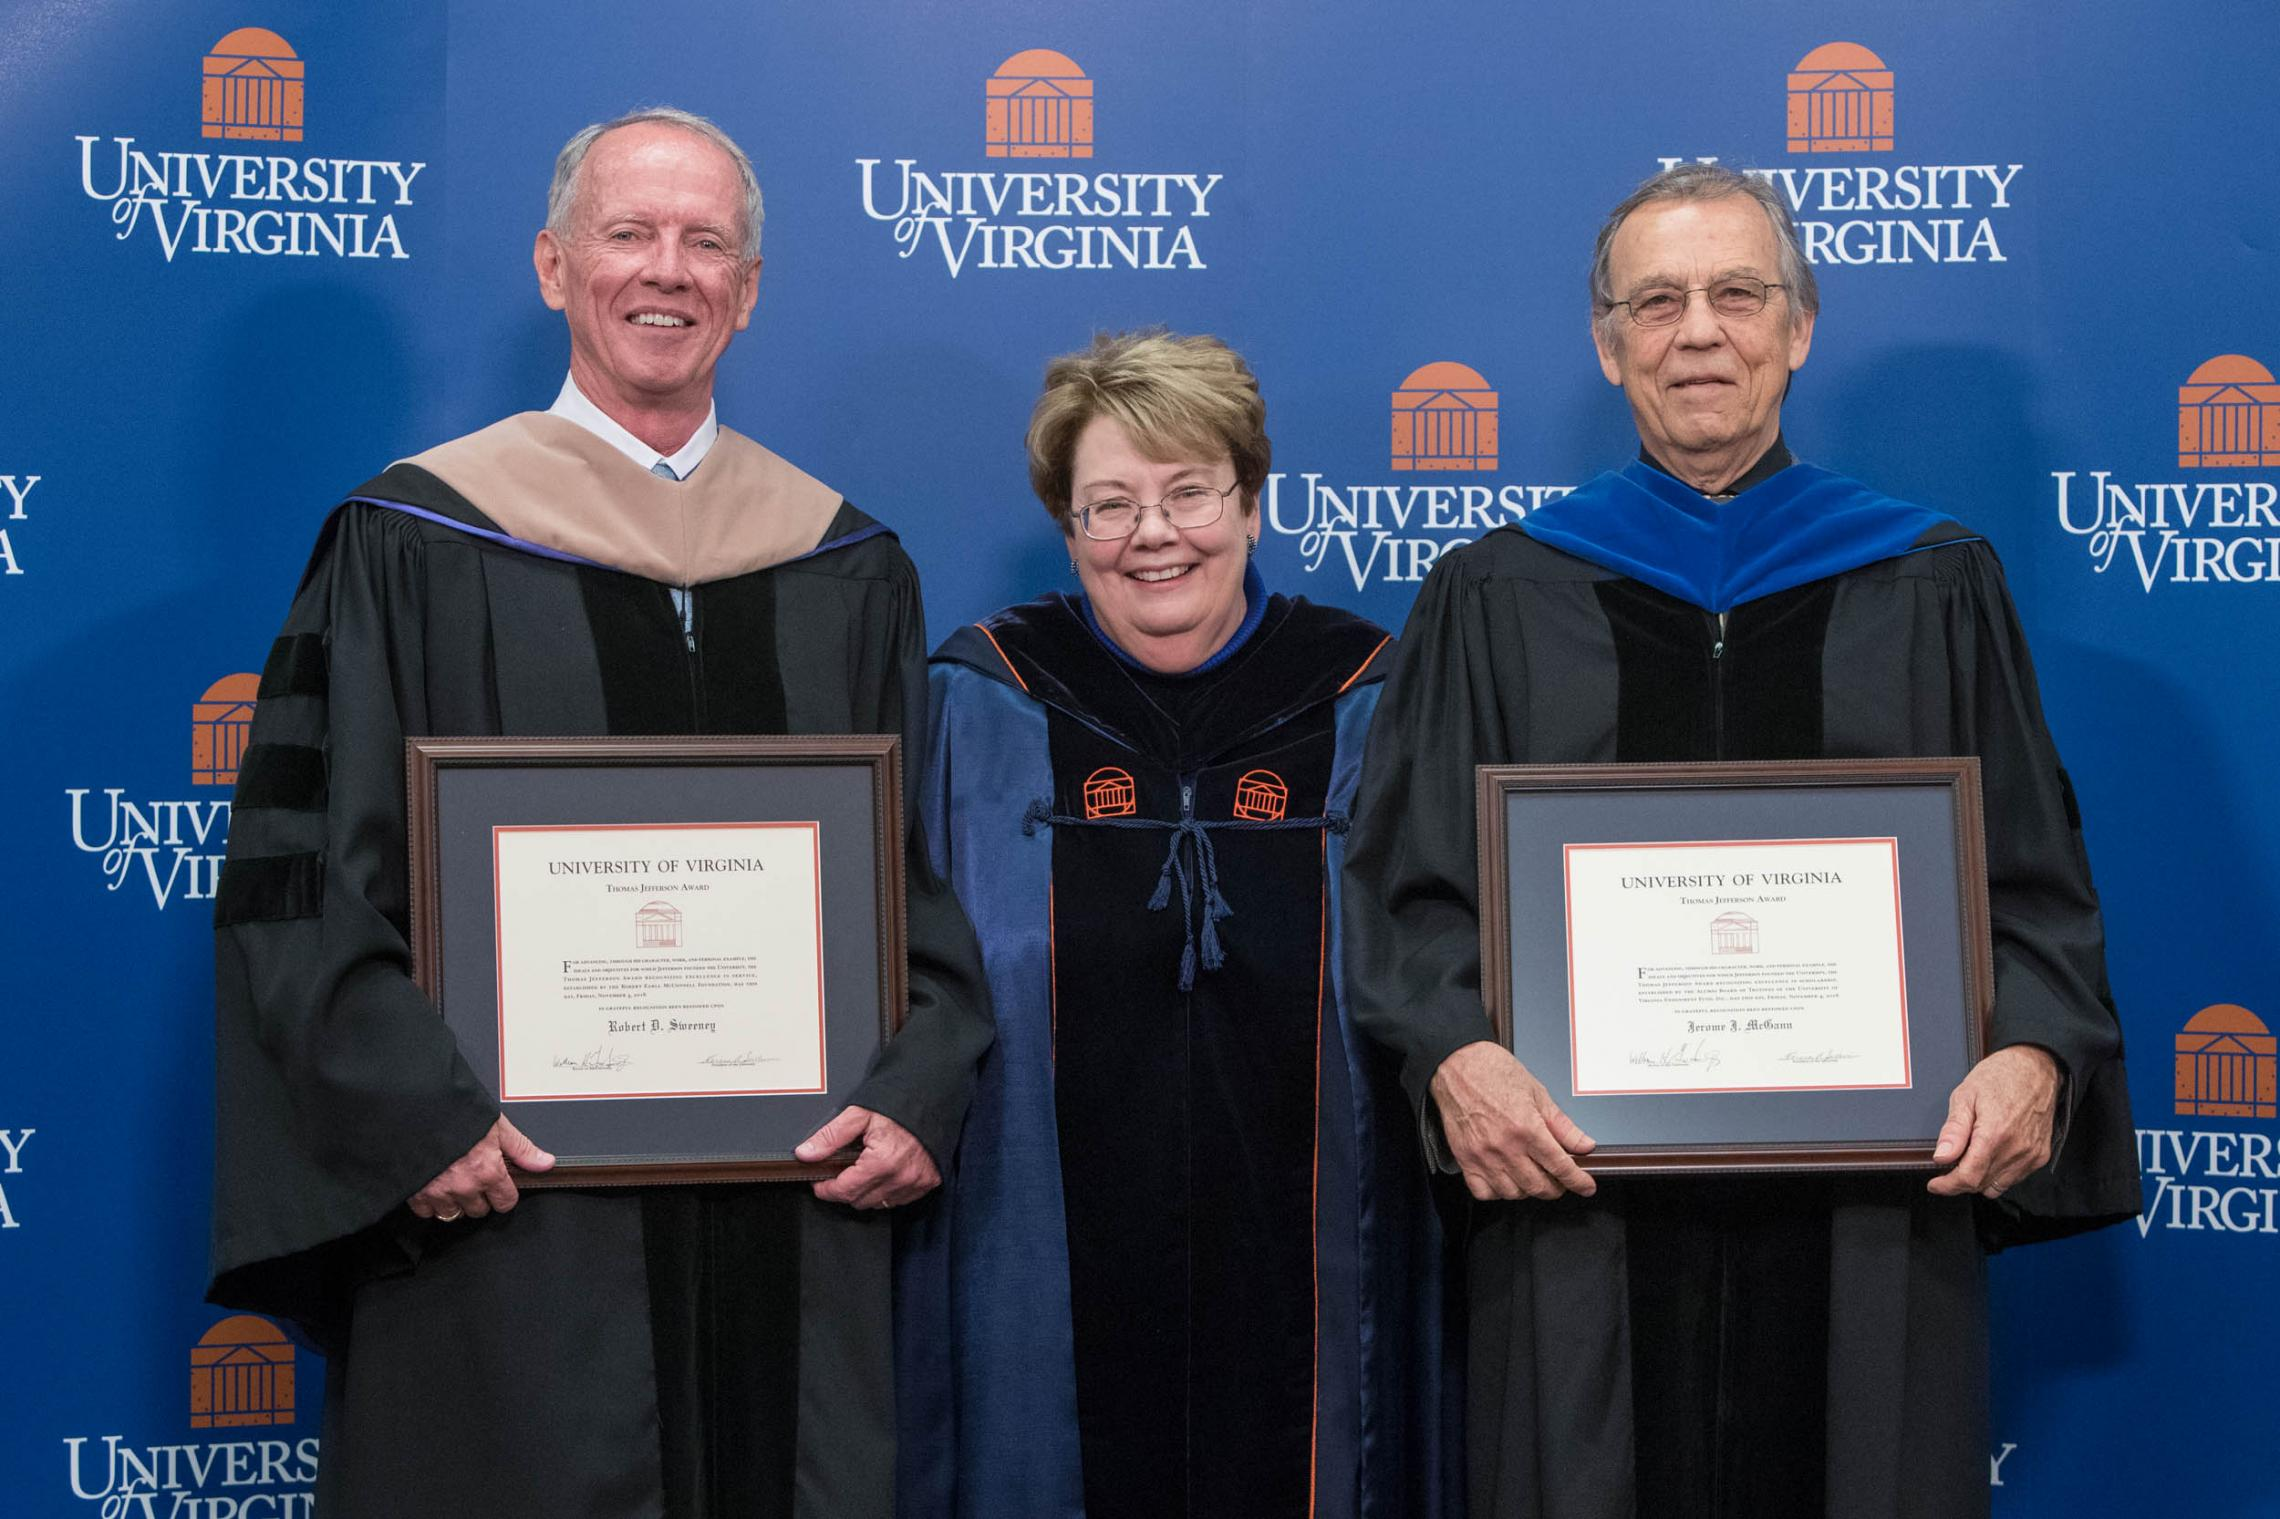 Thomas Jefferson Award winners Robert Sweeney, left, and Jerome McGann flank UVA President Teresa A. Sullivan at Friday's Fall Convocation. (Photos by Sanjay Suchak, University Communications)